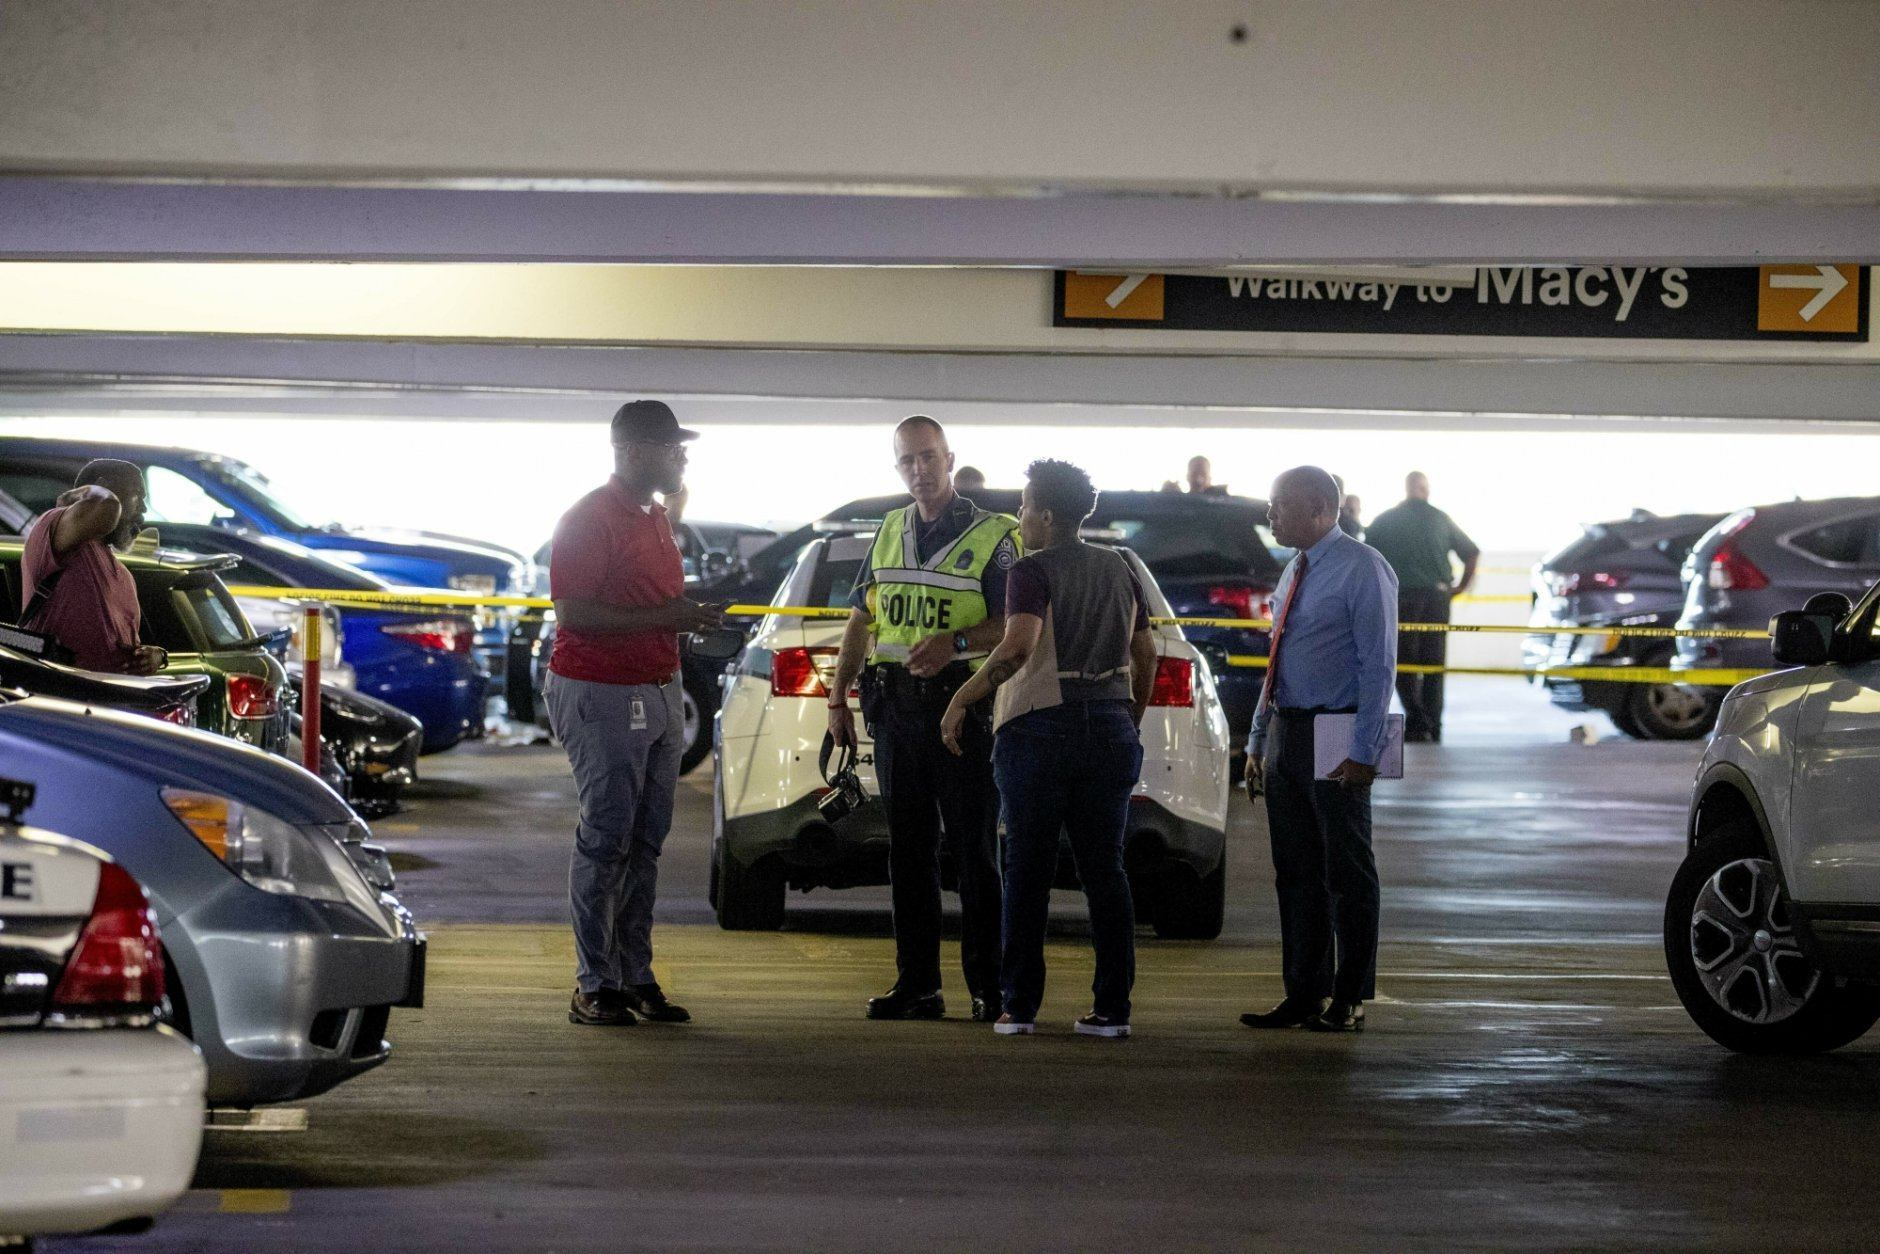 Police officers stand at a crime scene following a shooting at the parking garage for the Fashion Centre at Pentagon City, also known as Pentagon City Mall, Monday, July 1, 2019, in Arlington. (AP Photo/Andrew Harnik)